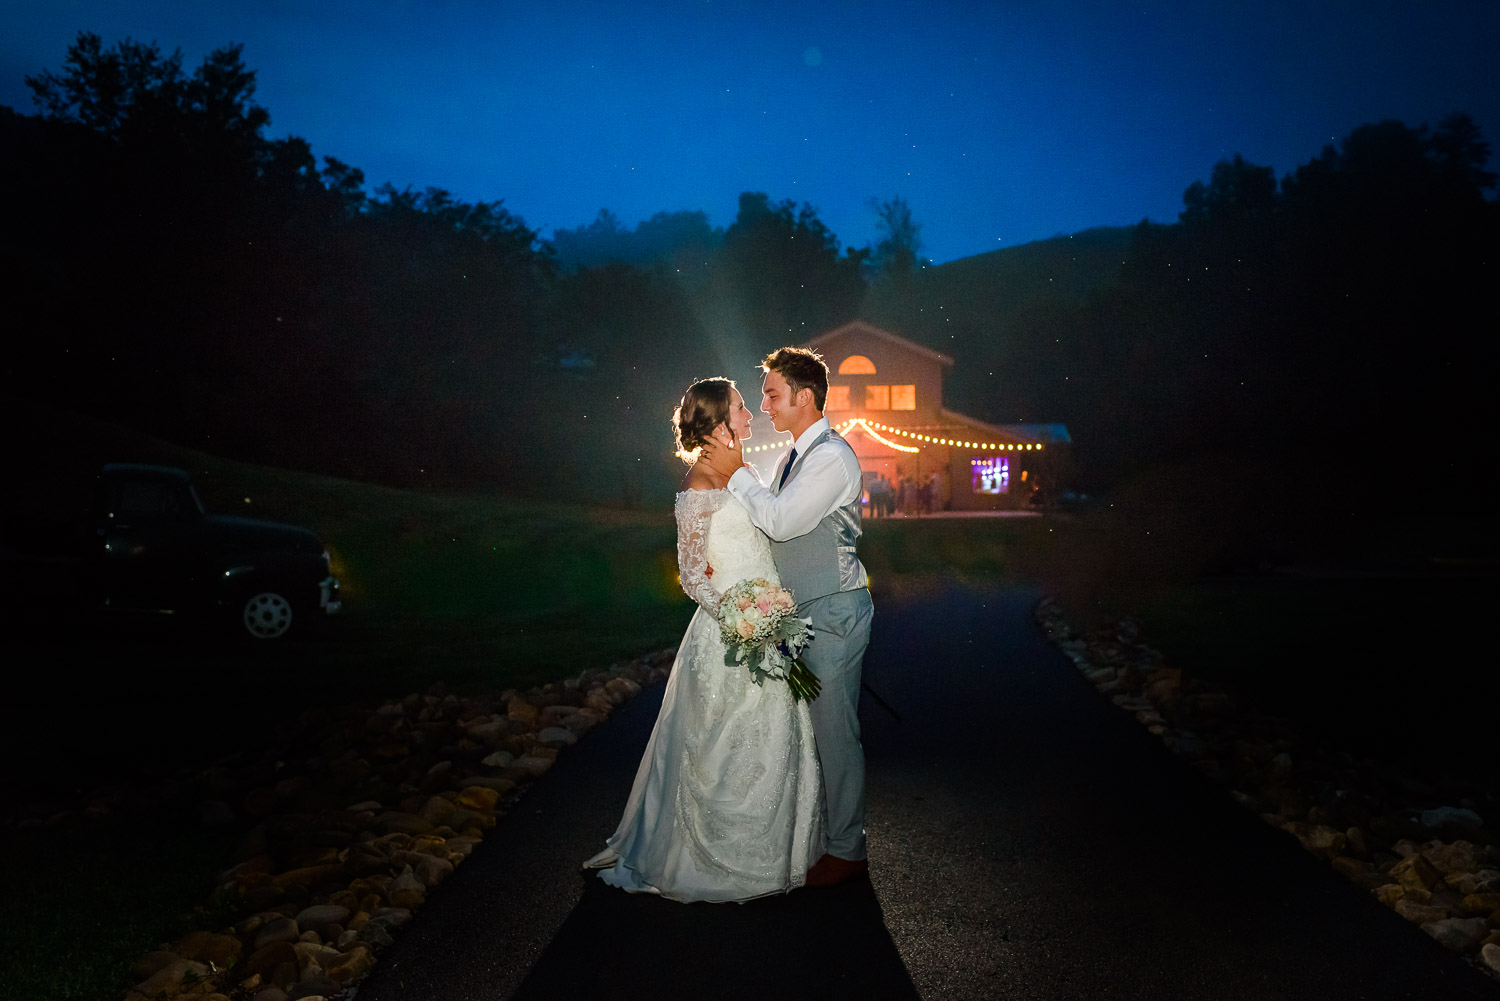 bride and groom at night with rim lighting and the venue at 4 points Farm softly in the background.